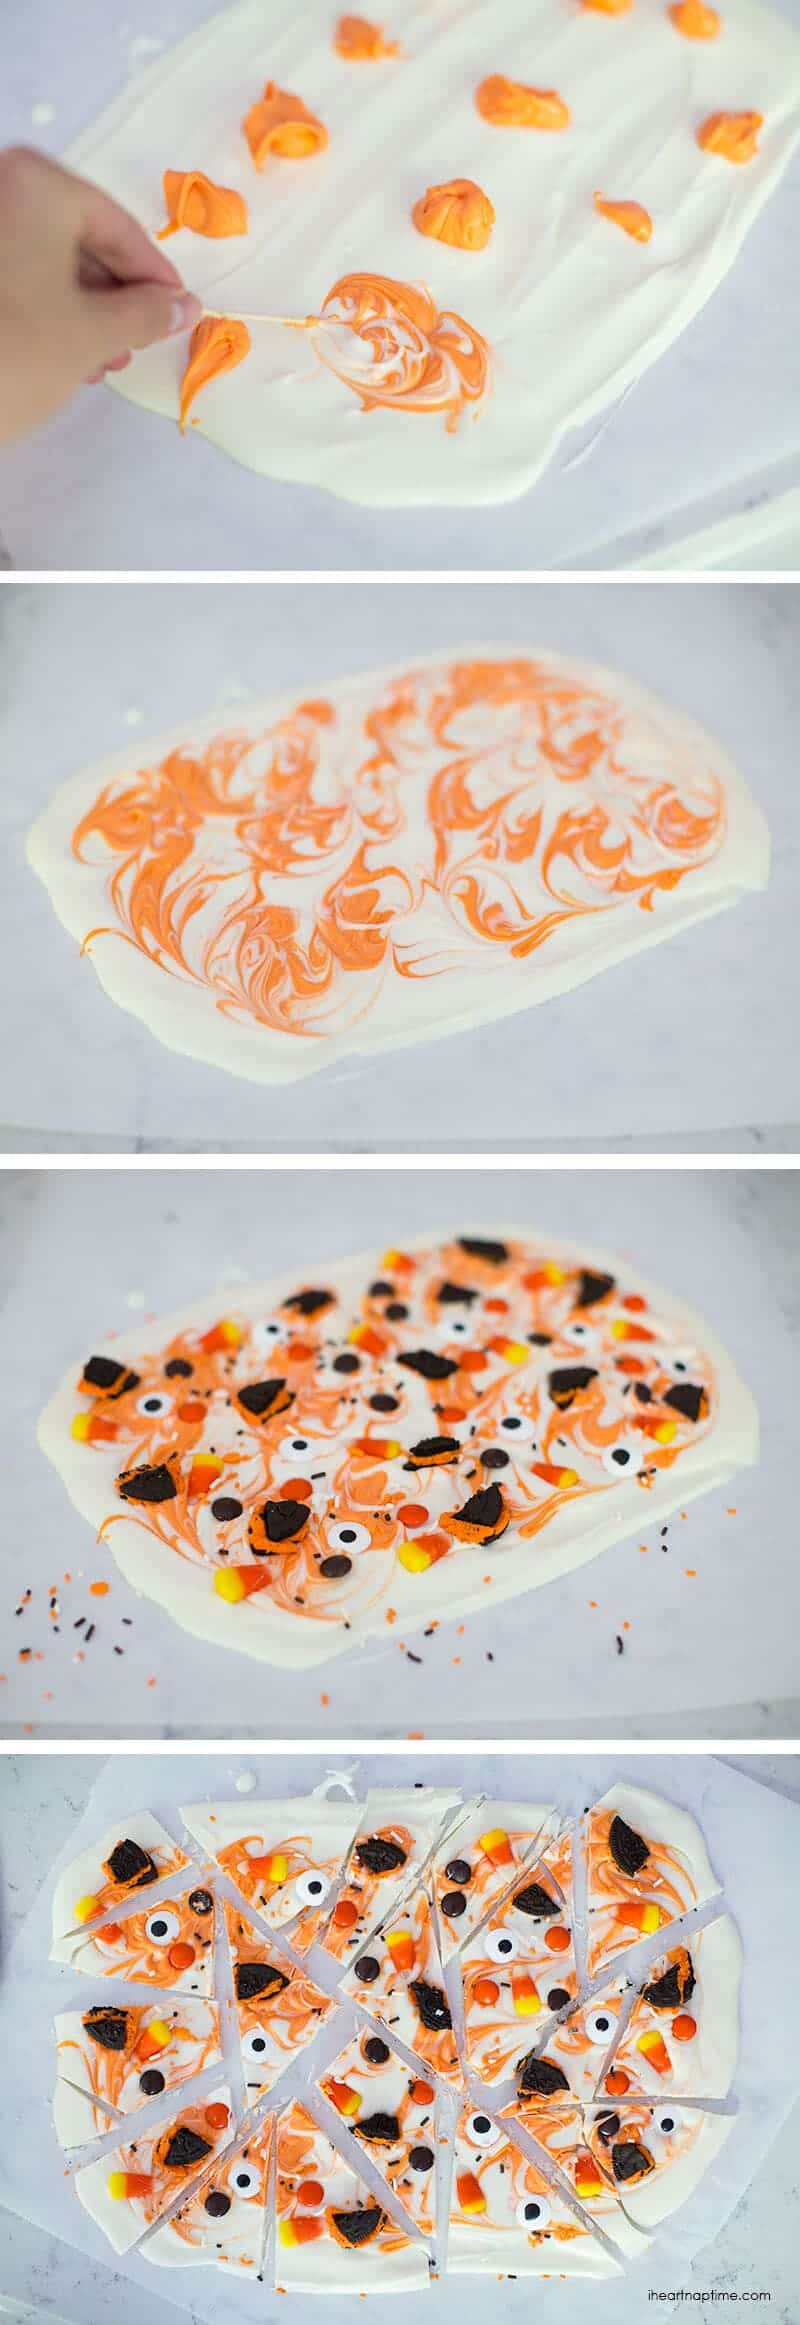 This Halloween candy bark is super easy to make, a kid favorite and can be customized with your favorite candies! Tie it up and give it with the free, printable tag on iheartnaptime.com